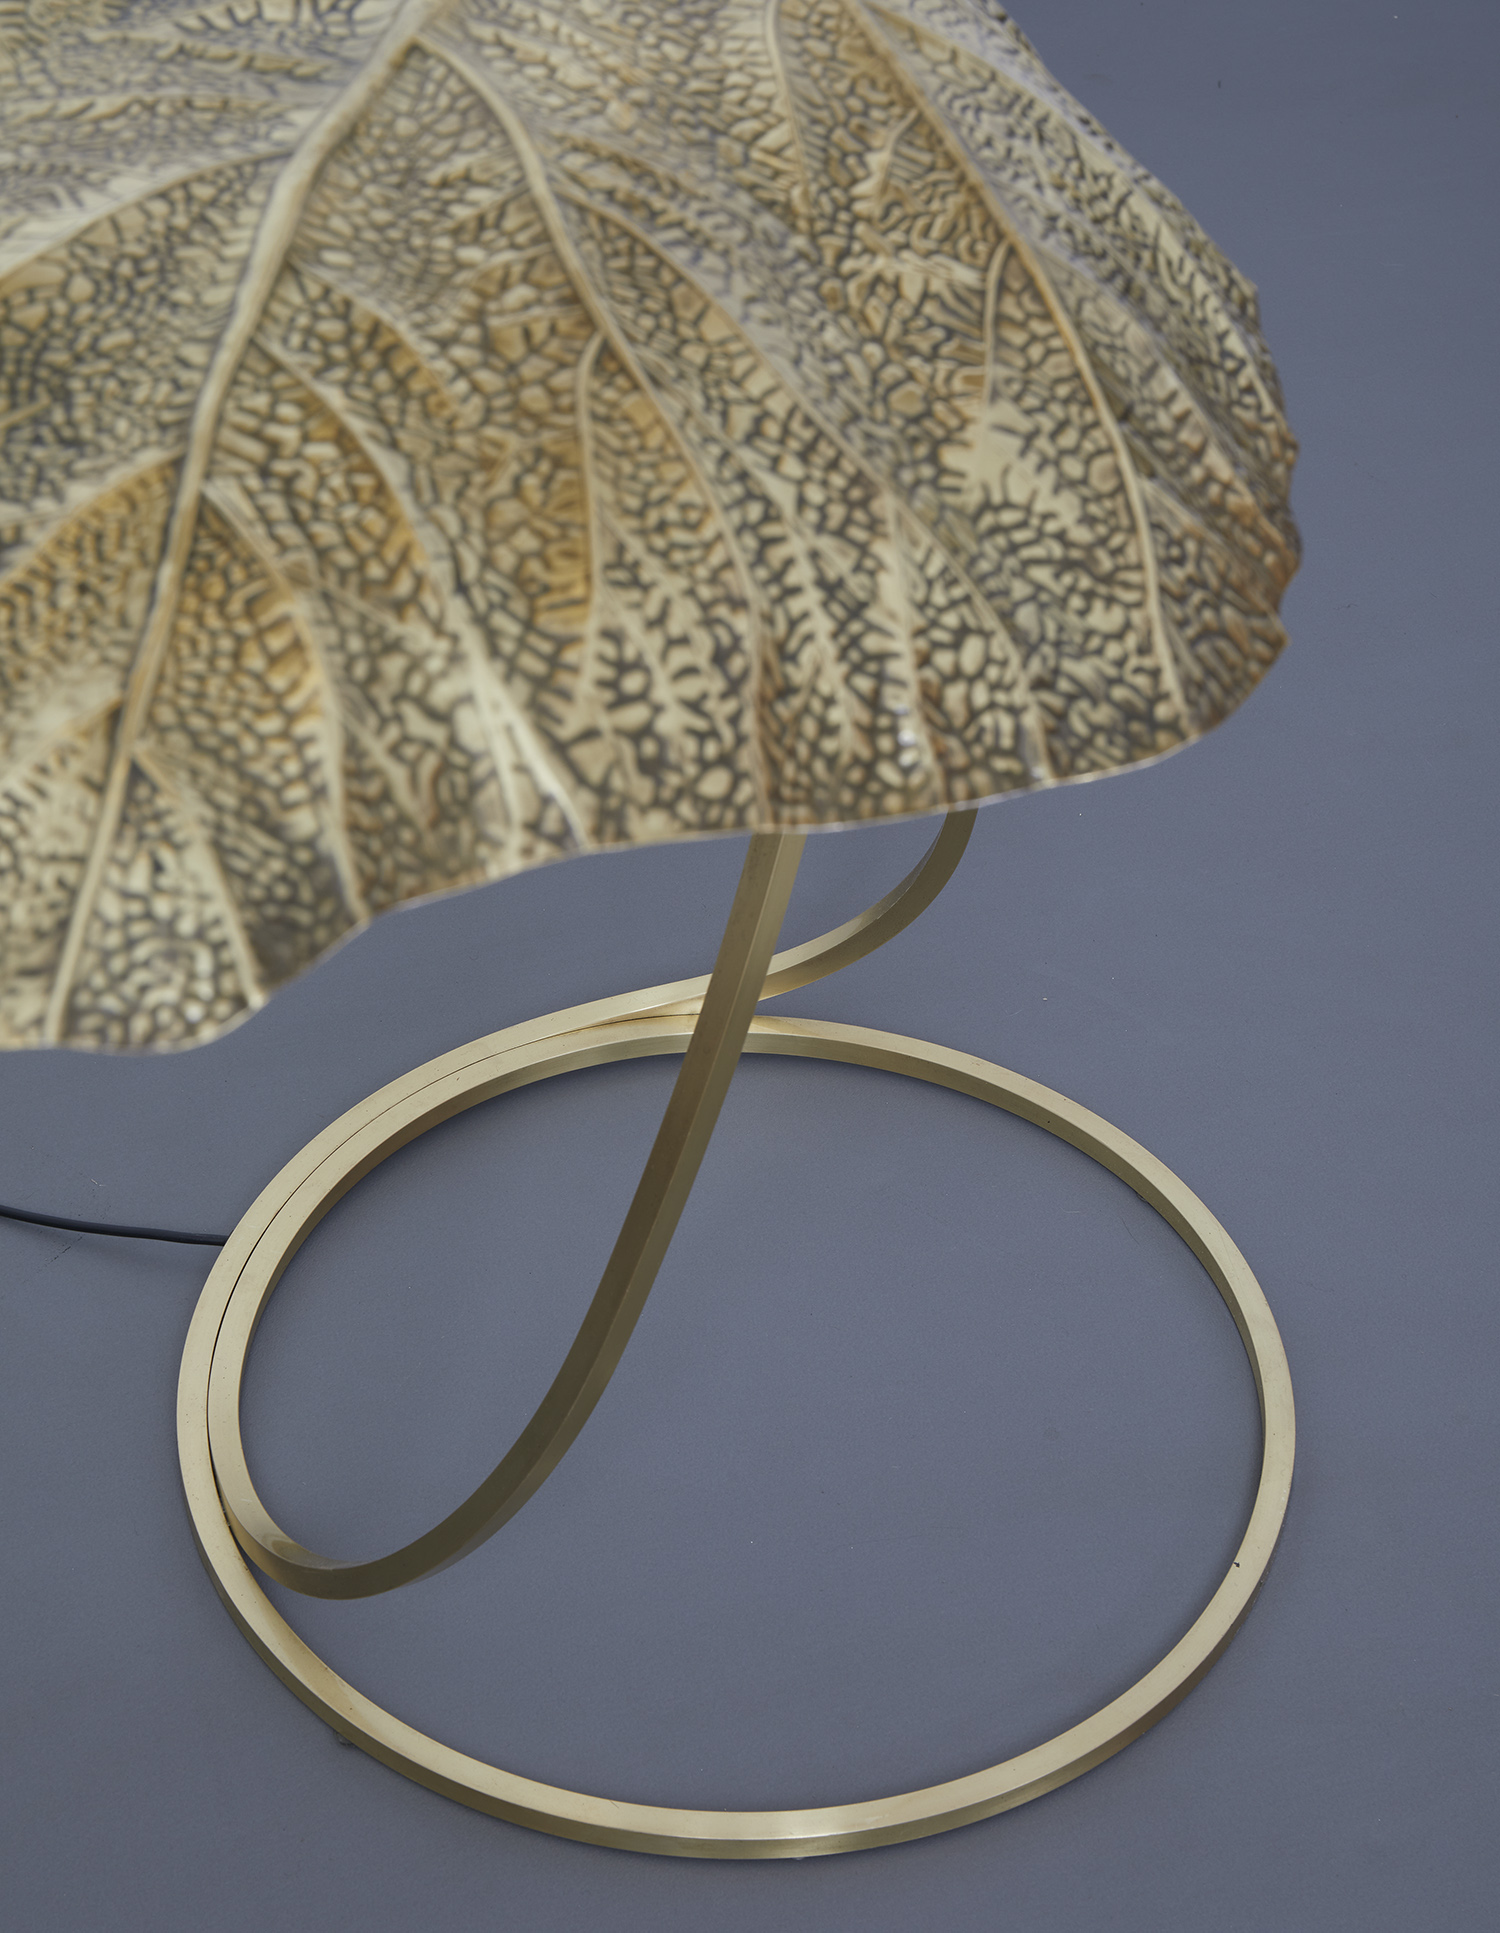 carlo-giorgi-brass-floor-lamp-with-three-leaves-for-bottega-gadda-italy-1970-image-08